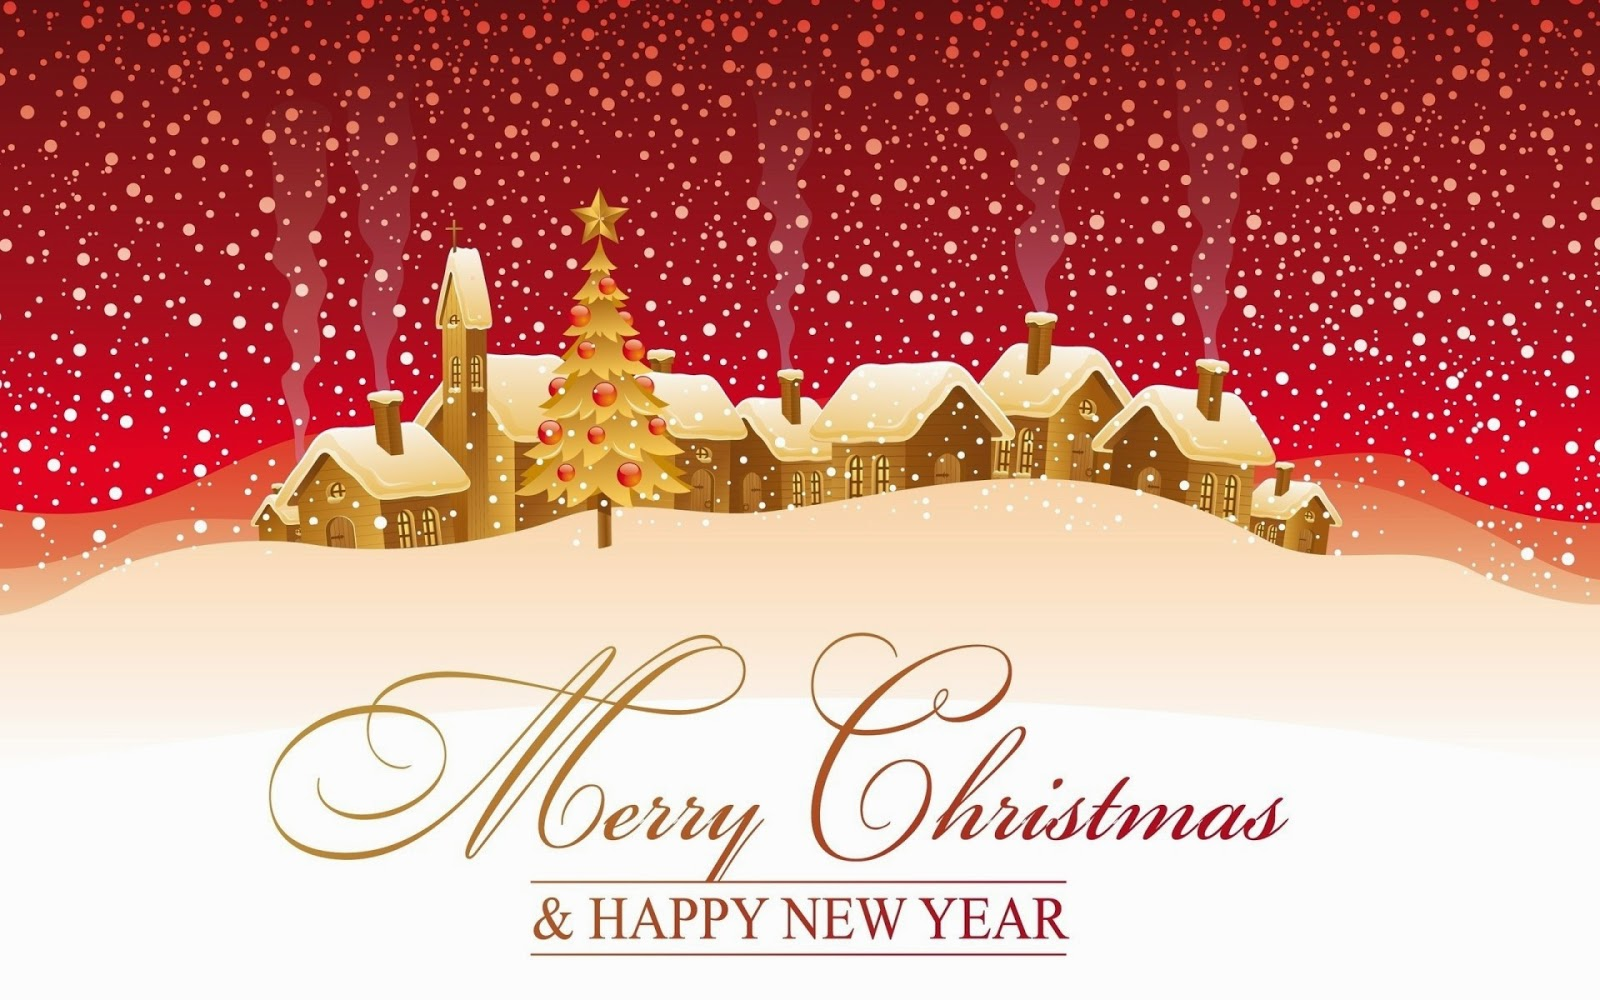 New Year 2017 Greeting Cards & Christmas Cards